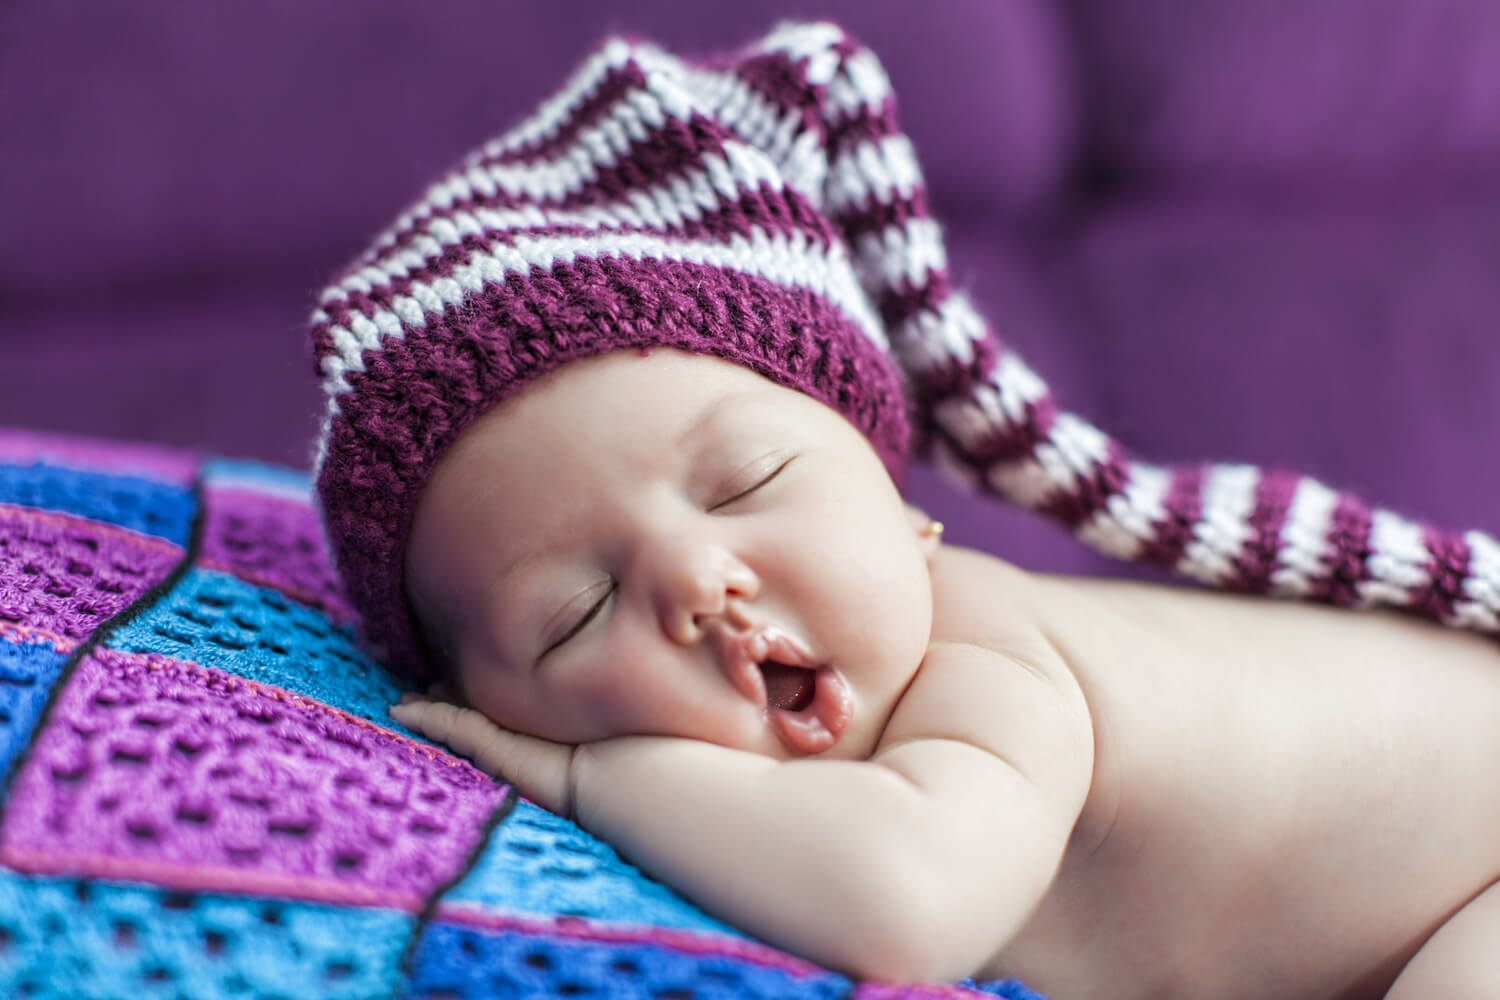 Baby Sleep Noises – Types, Causes and Tips to Reduce